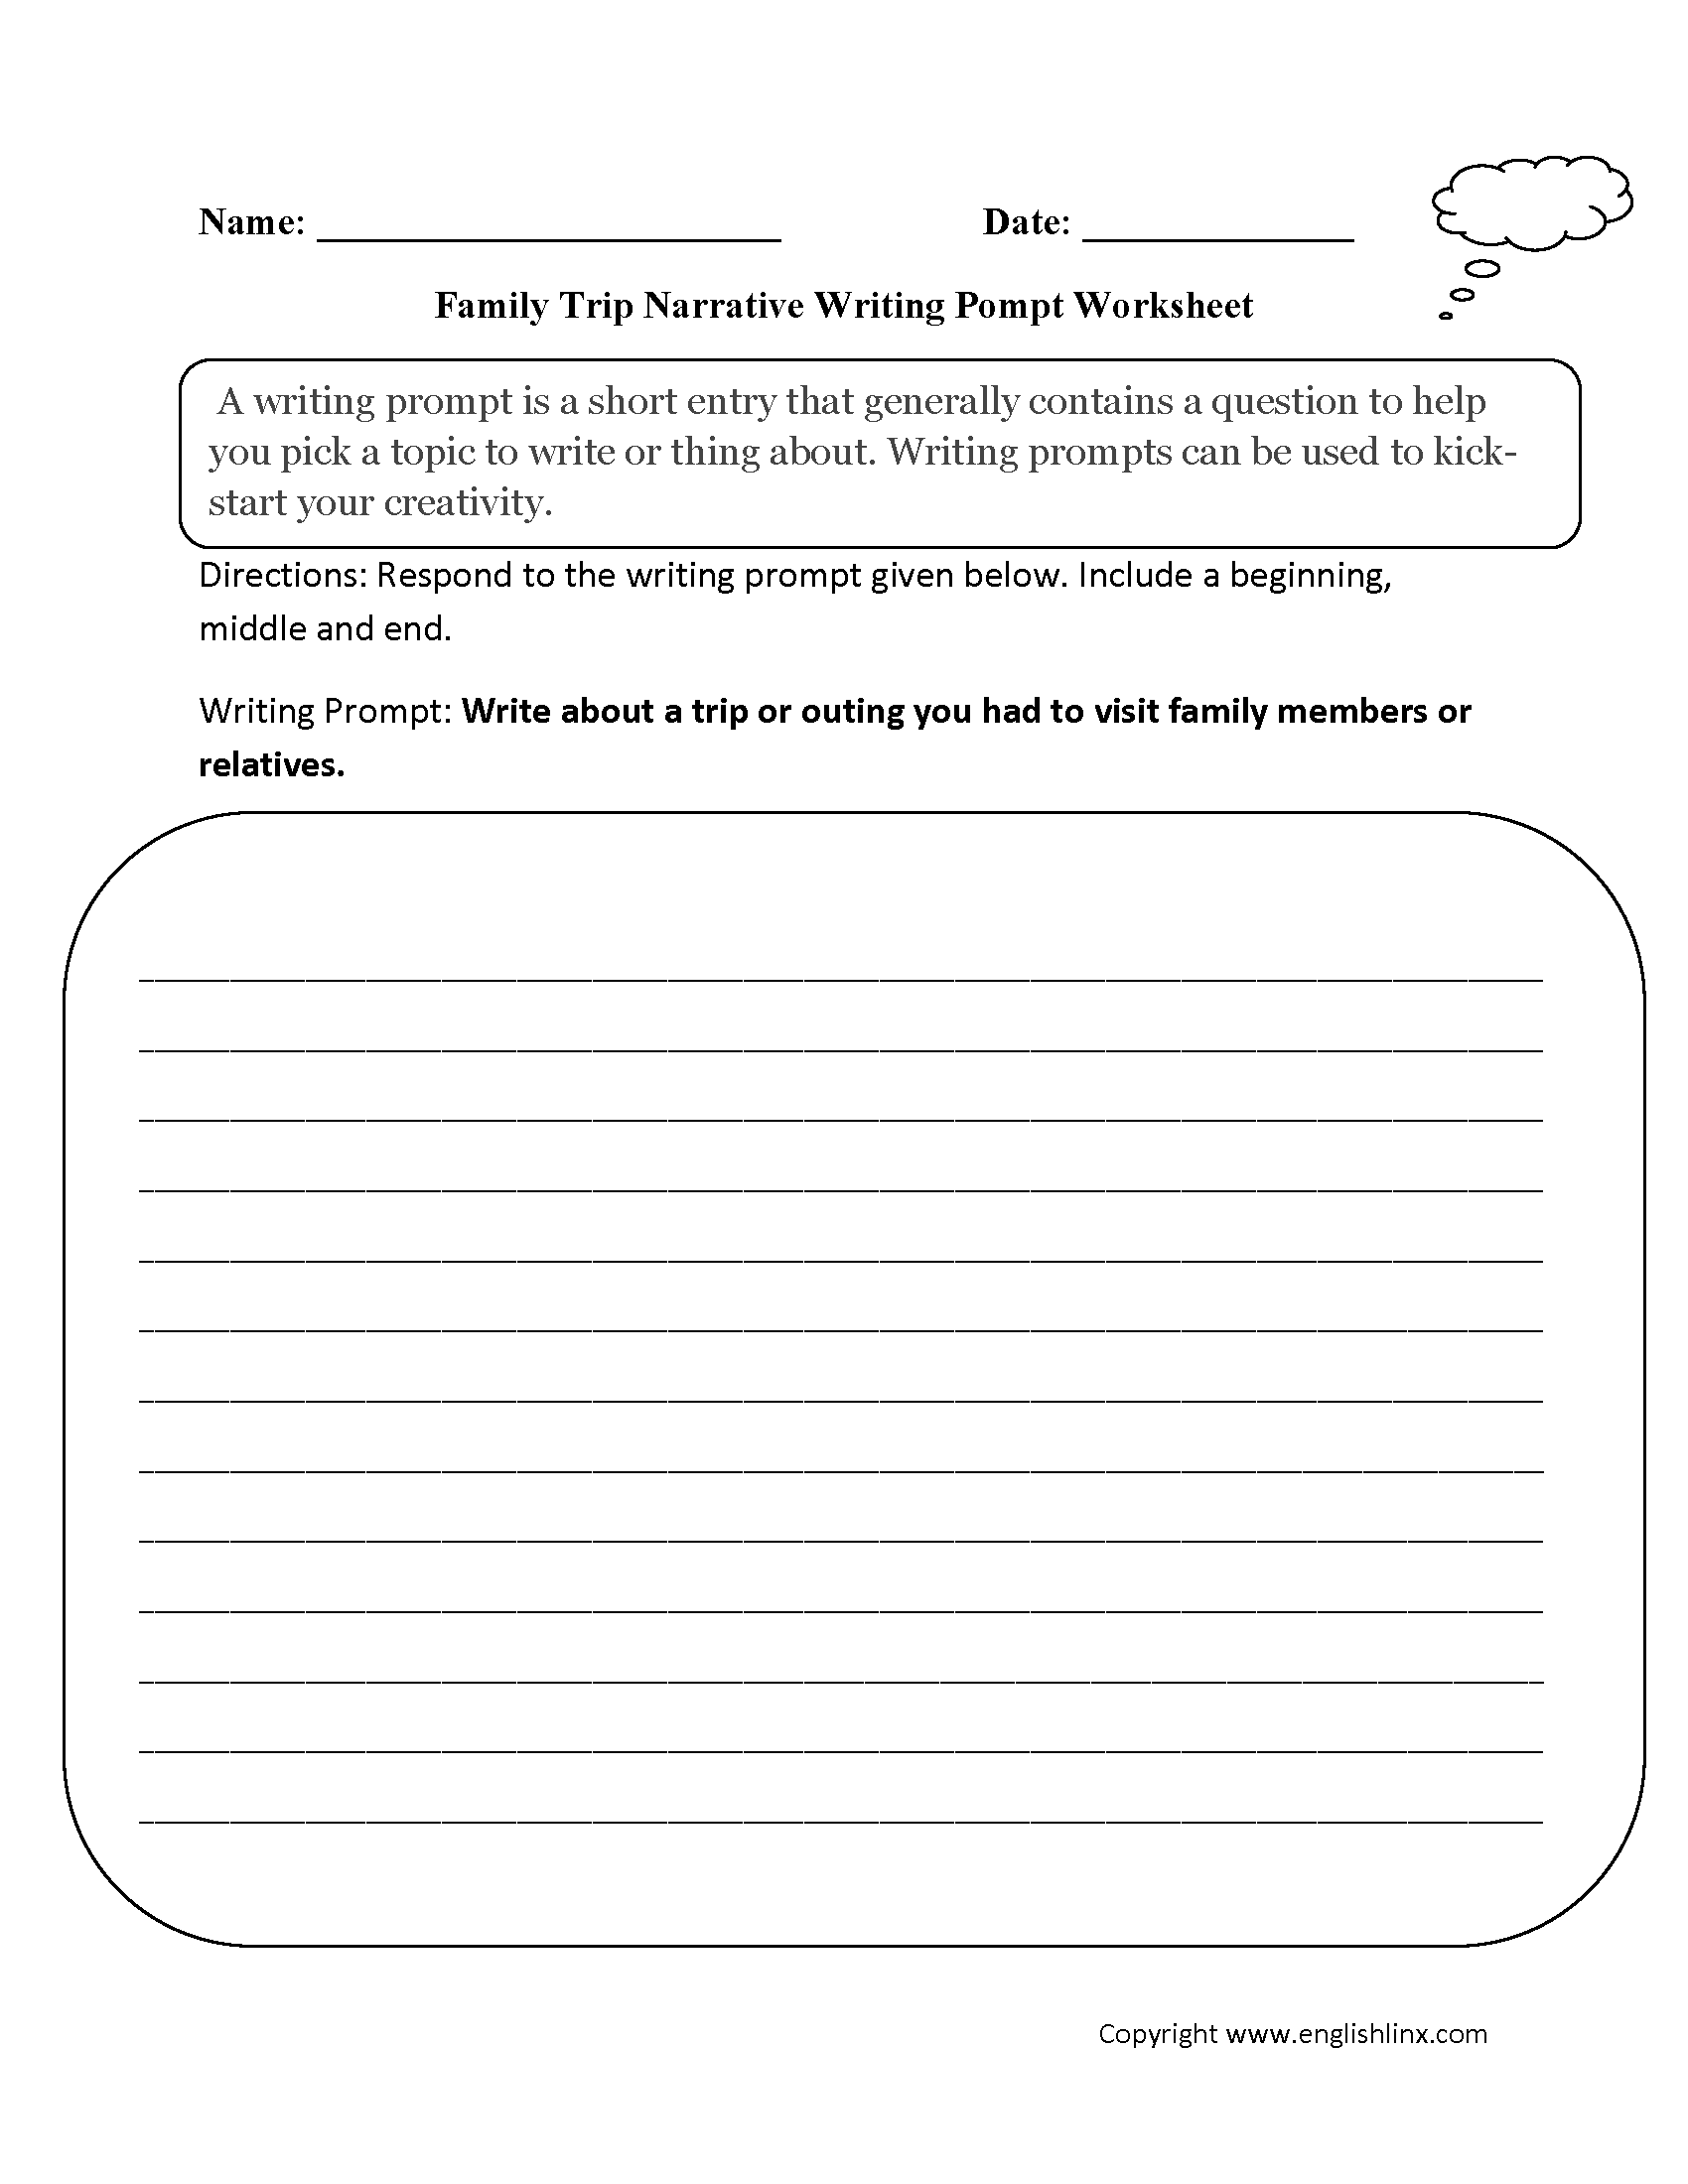 Uncategorized 6th Grade Vocabulary Worksheets 100 context clues worksheets 6th grade free worksheet writing prompt would be good for warm ups at the